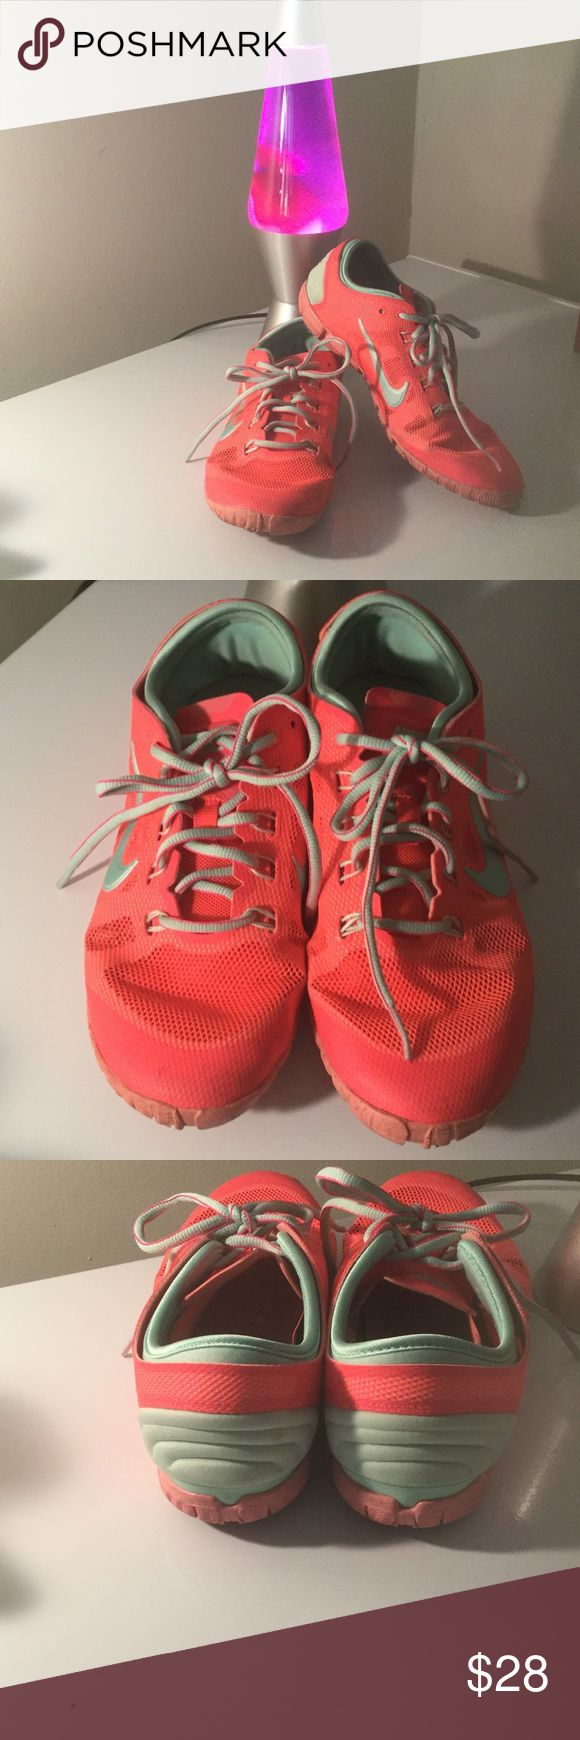 Nike training sneakers, size 7 Nike training shoes, size 7. Extremely lightweight, fabric upper. Color is coral with grey trim, pleasant combination. EUC, worn very little. Nike Shoes Sneakers